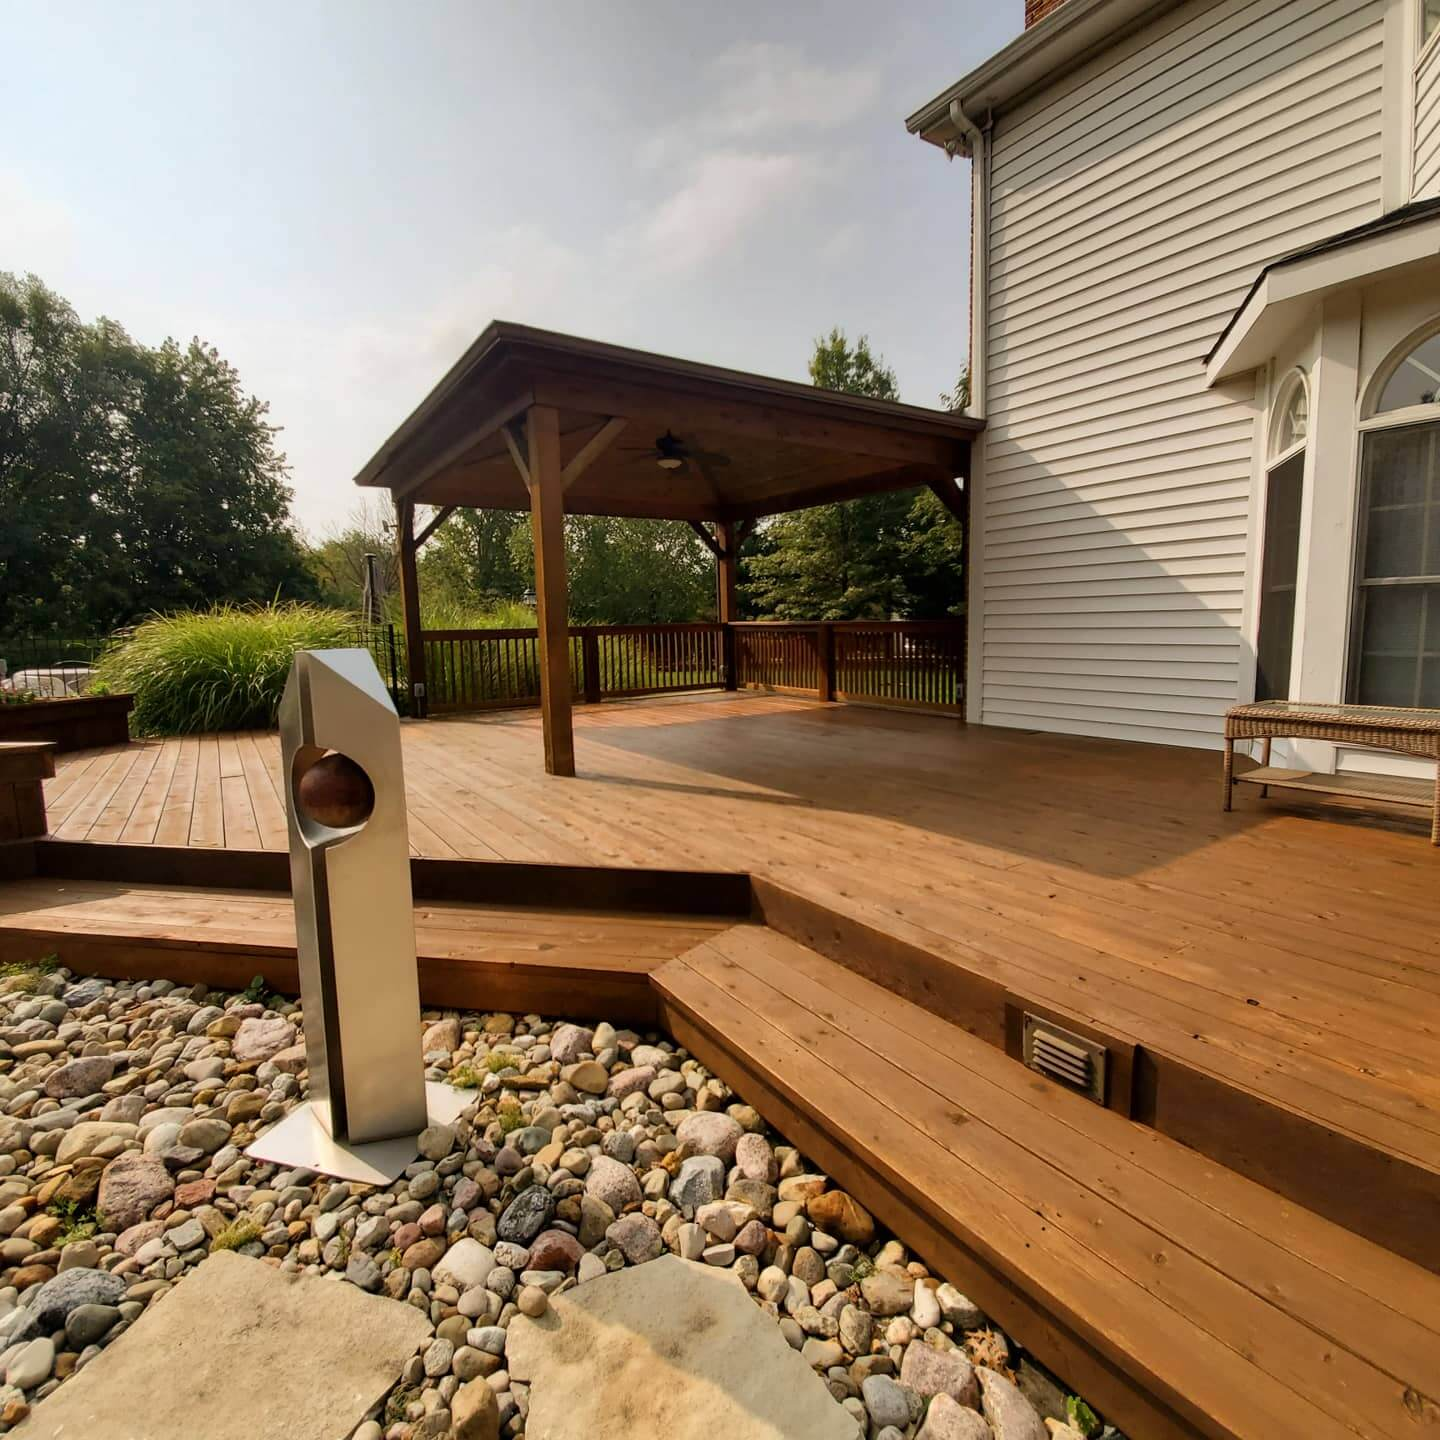 st-louis-deck-staining-2